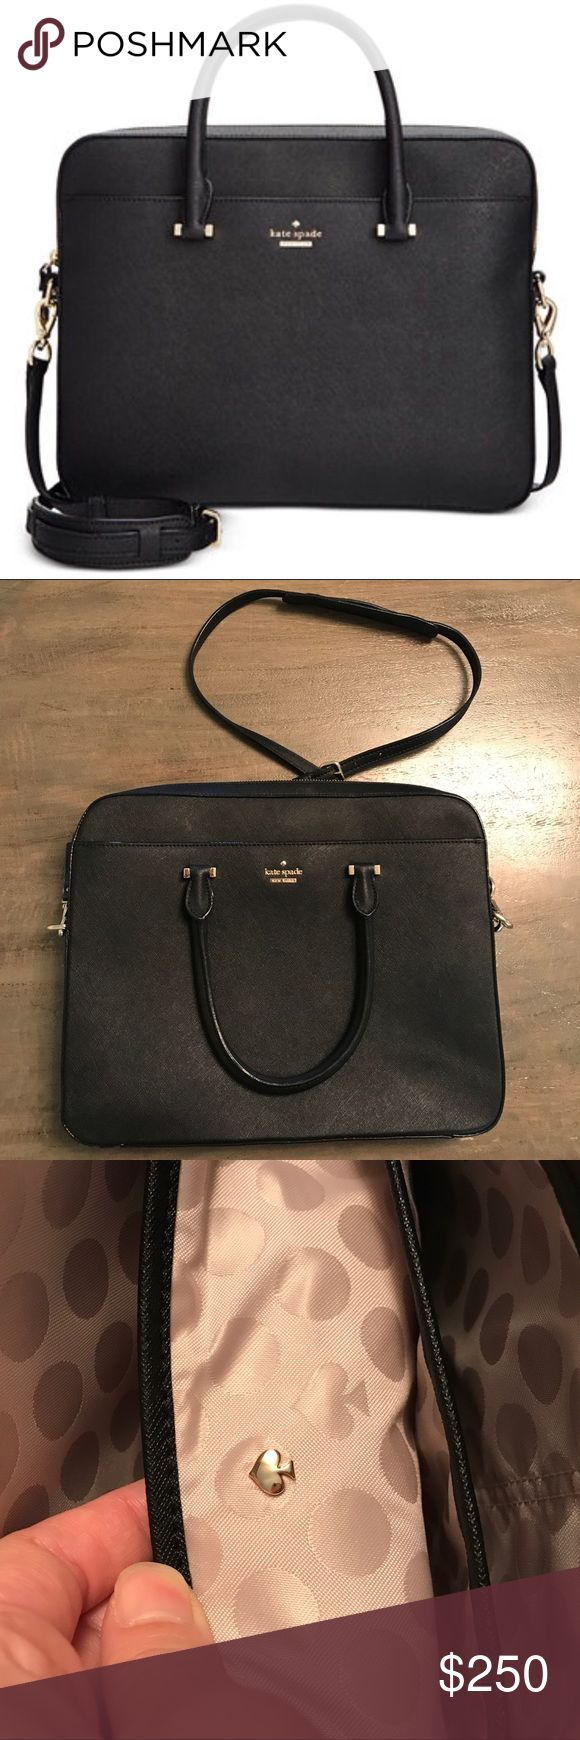 Best 25 Kate Spade Laptop Bag Ideas On Pinterest Kate Spade Briefcase Leather Laptop Bag And